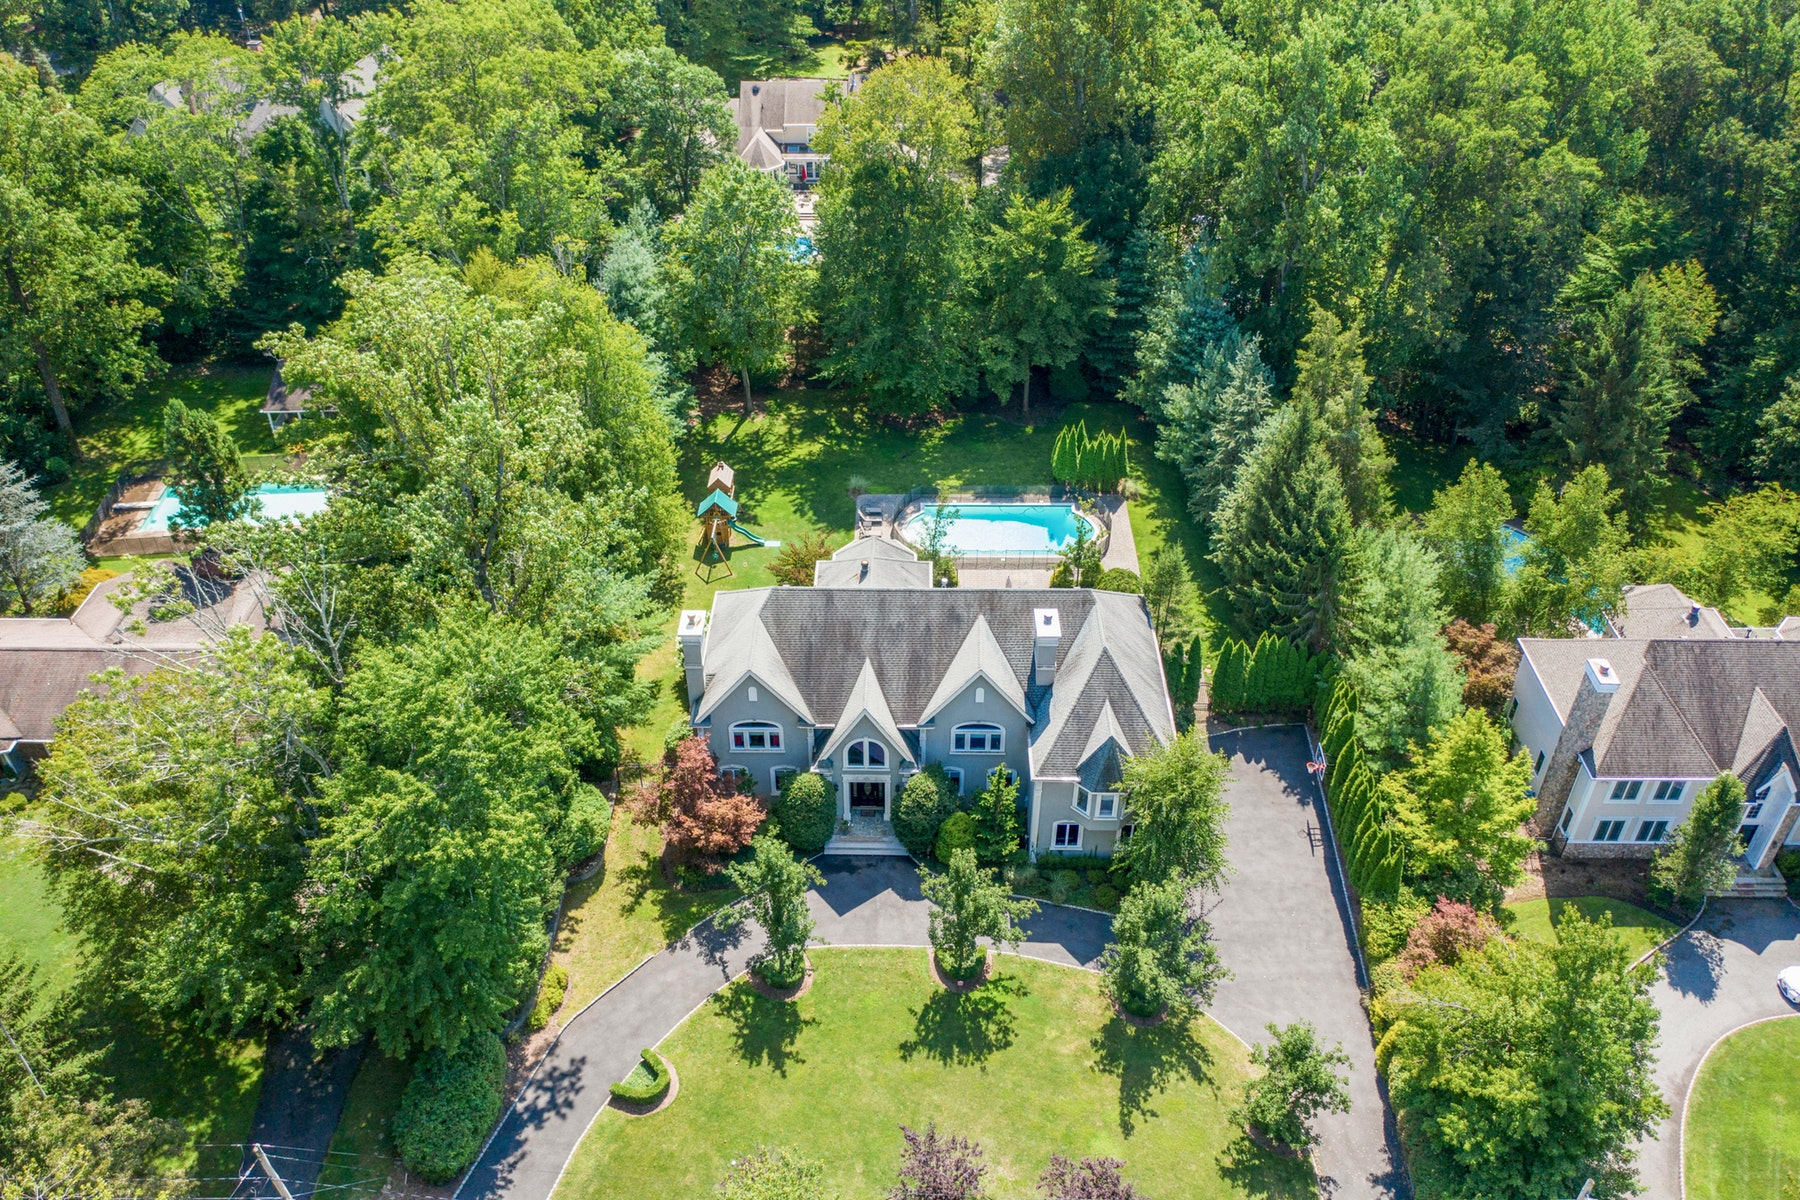 Single Family Homes for Sale at Custom Colonial Home 44 Hampshire Hill Road Upper Saddle River, New Jersey 07458 United States